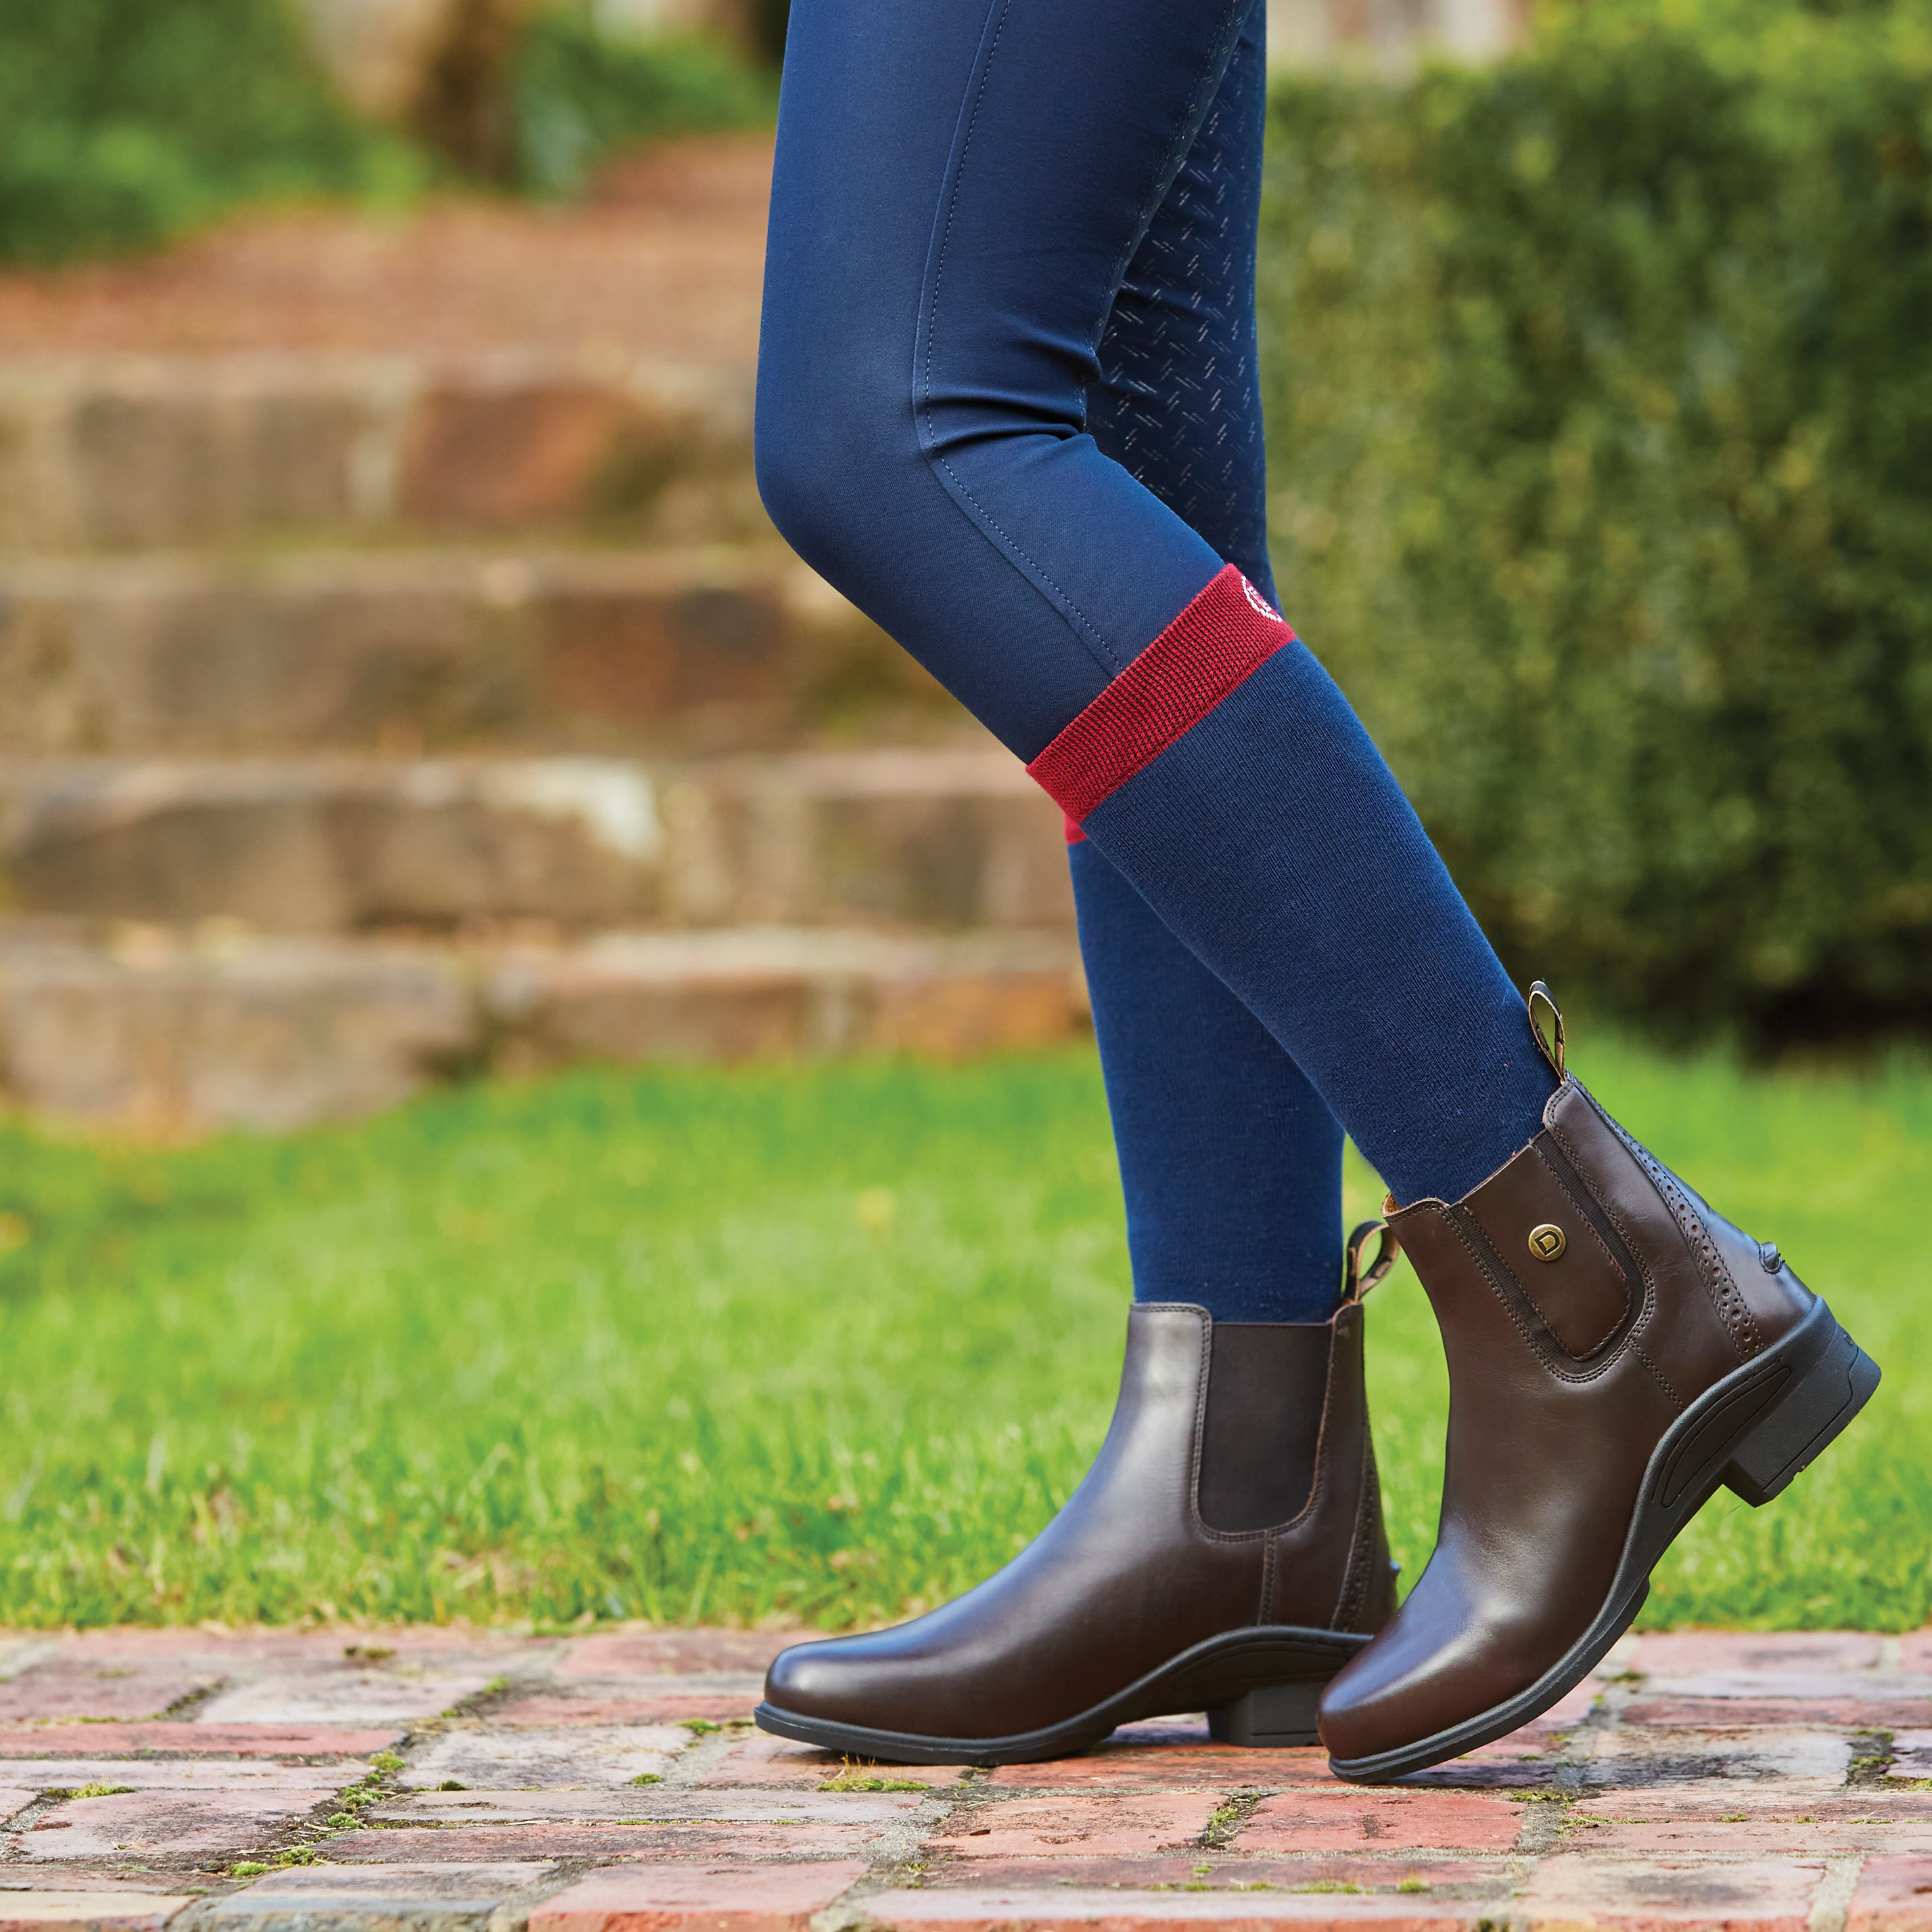 Dublin's New Paddock Boot Collection for AW20